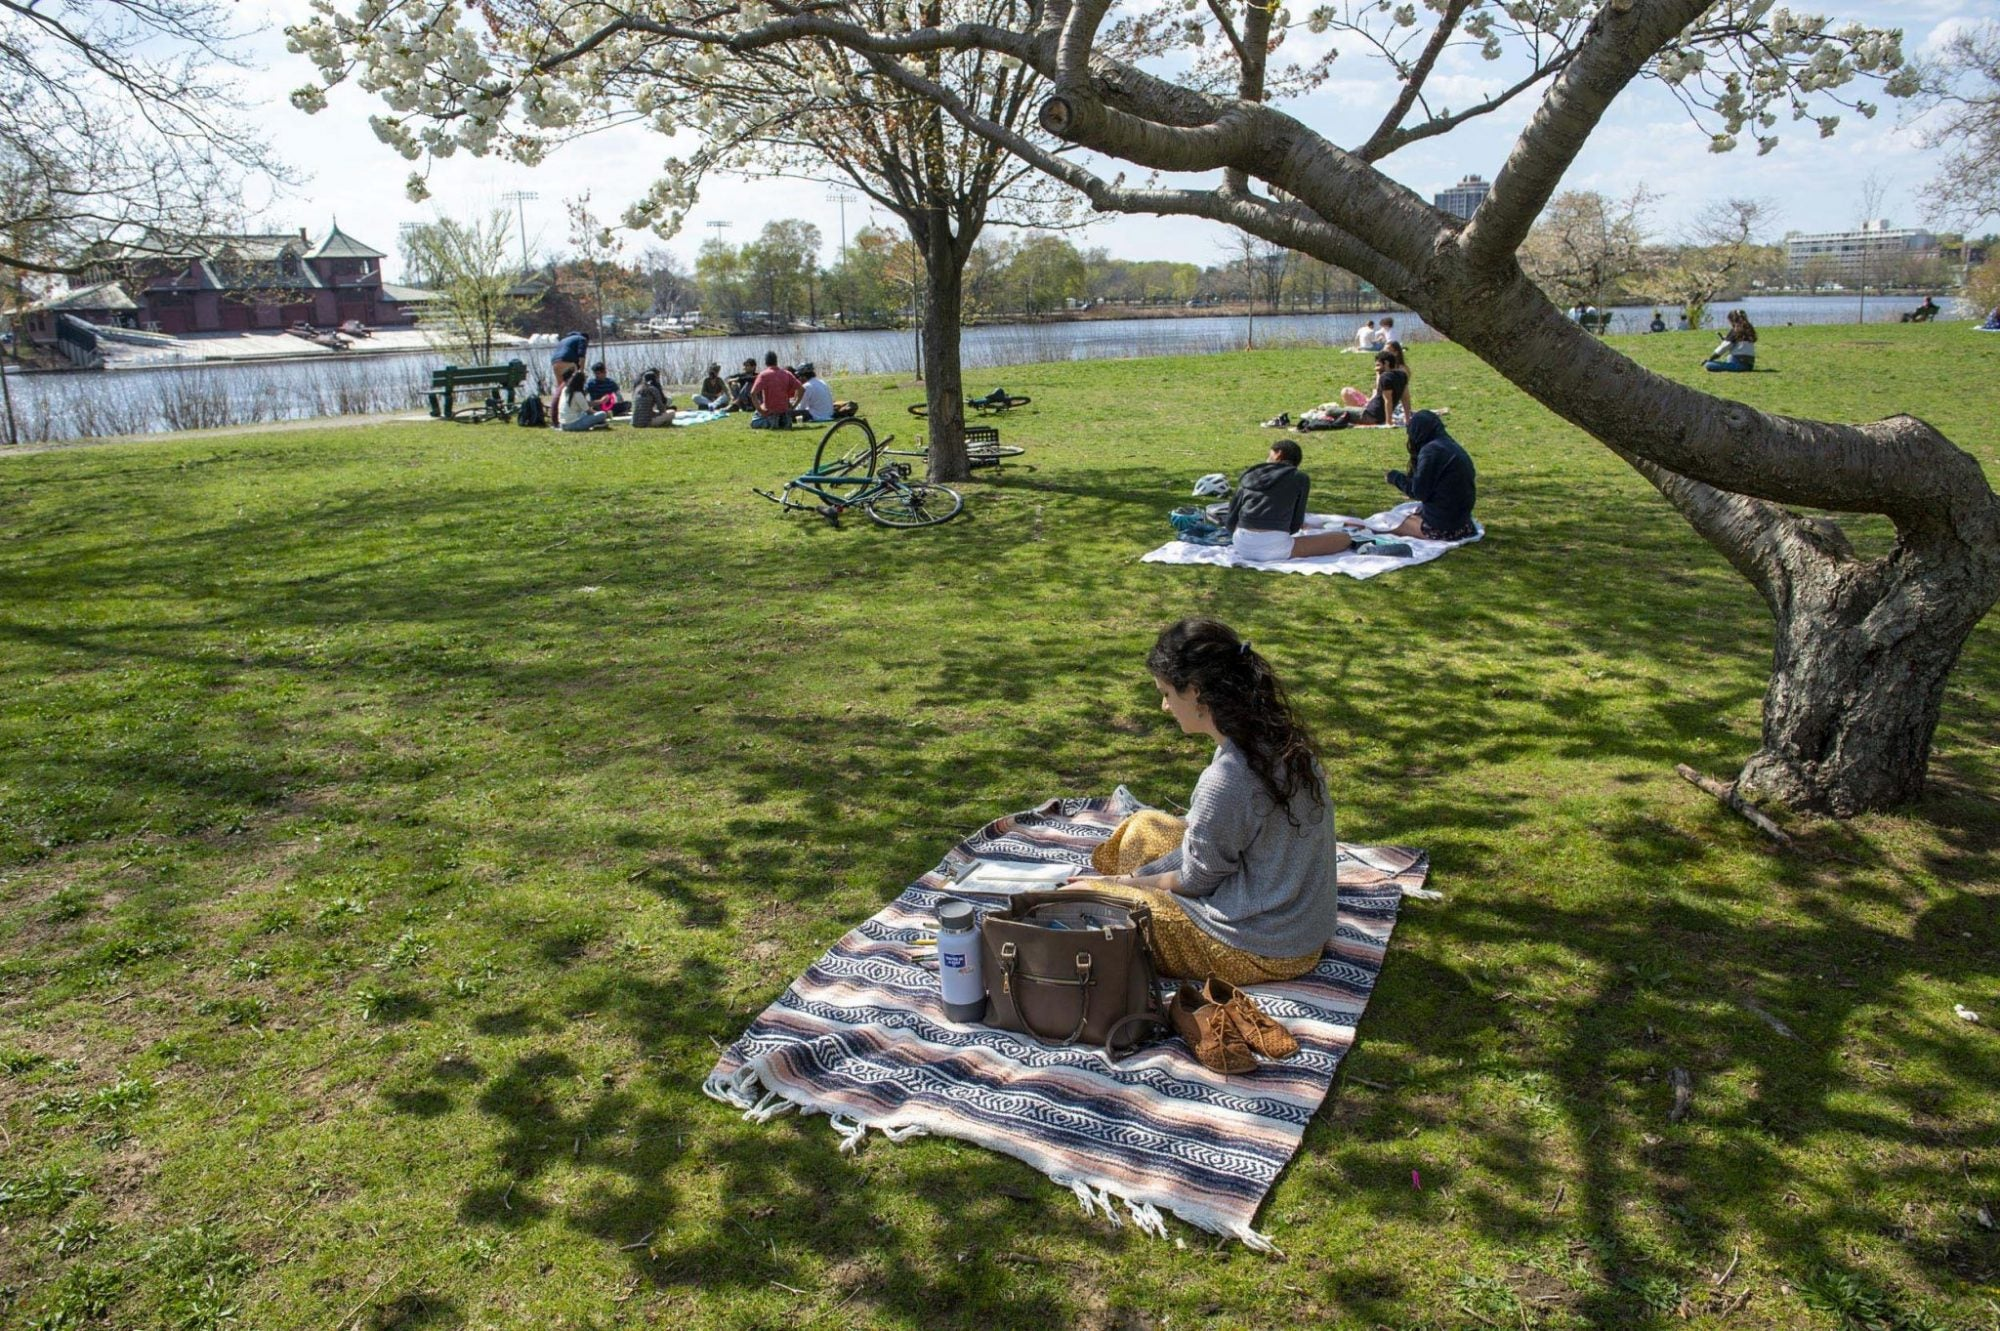 People picnicking next to the Charles river